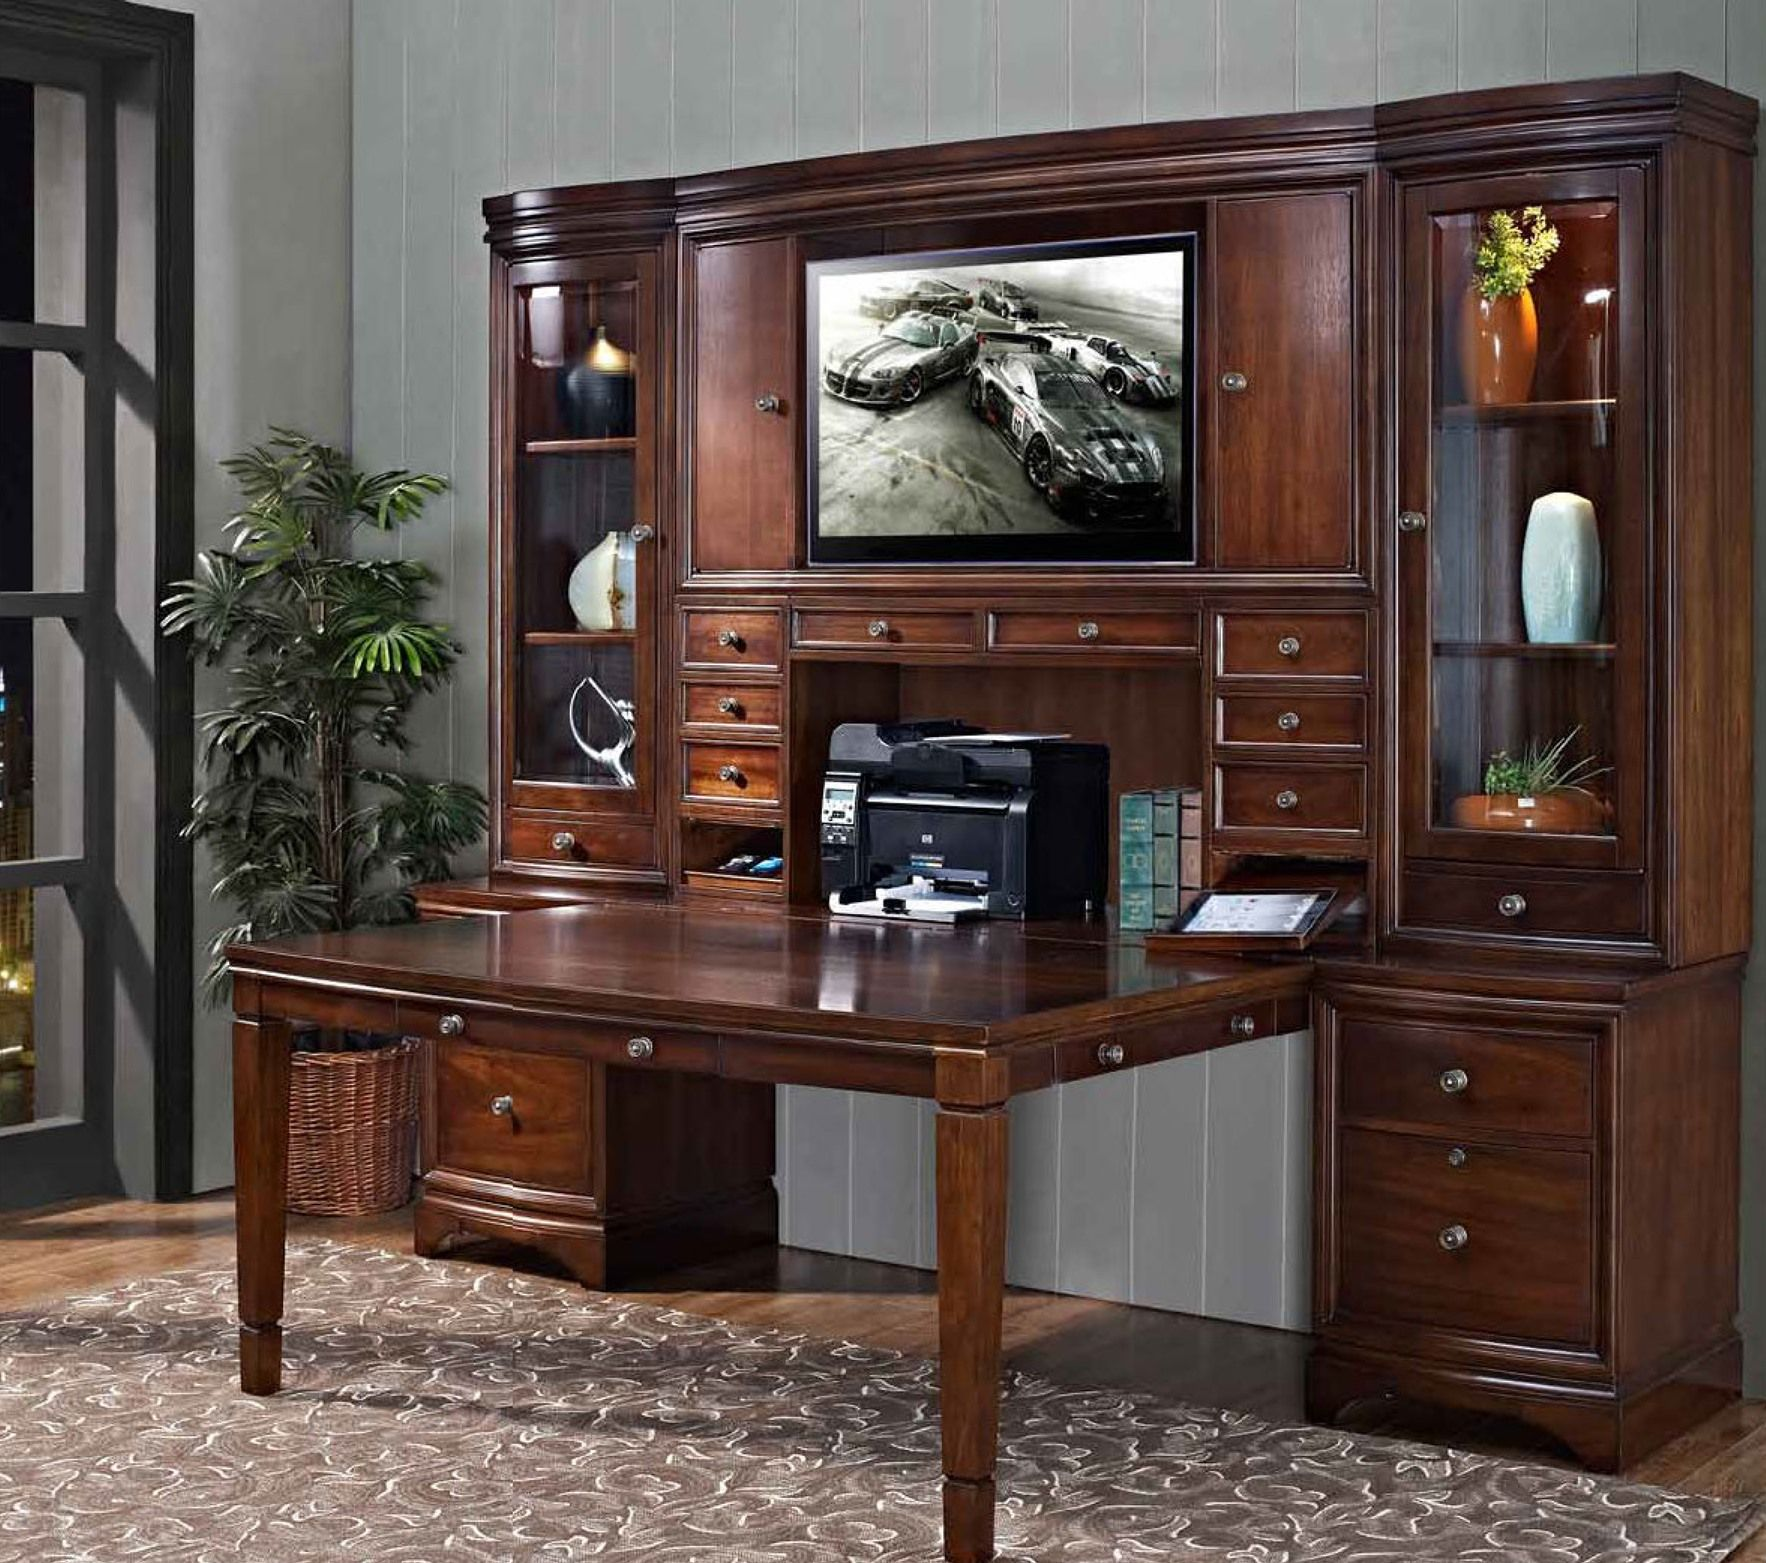 Home Office Design Stores Kids Buy Study Table Furniture F: Madison Collection Partner's Desk Unit